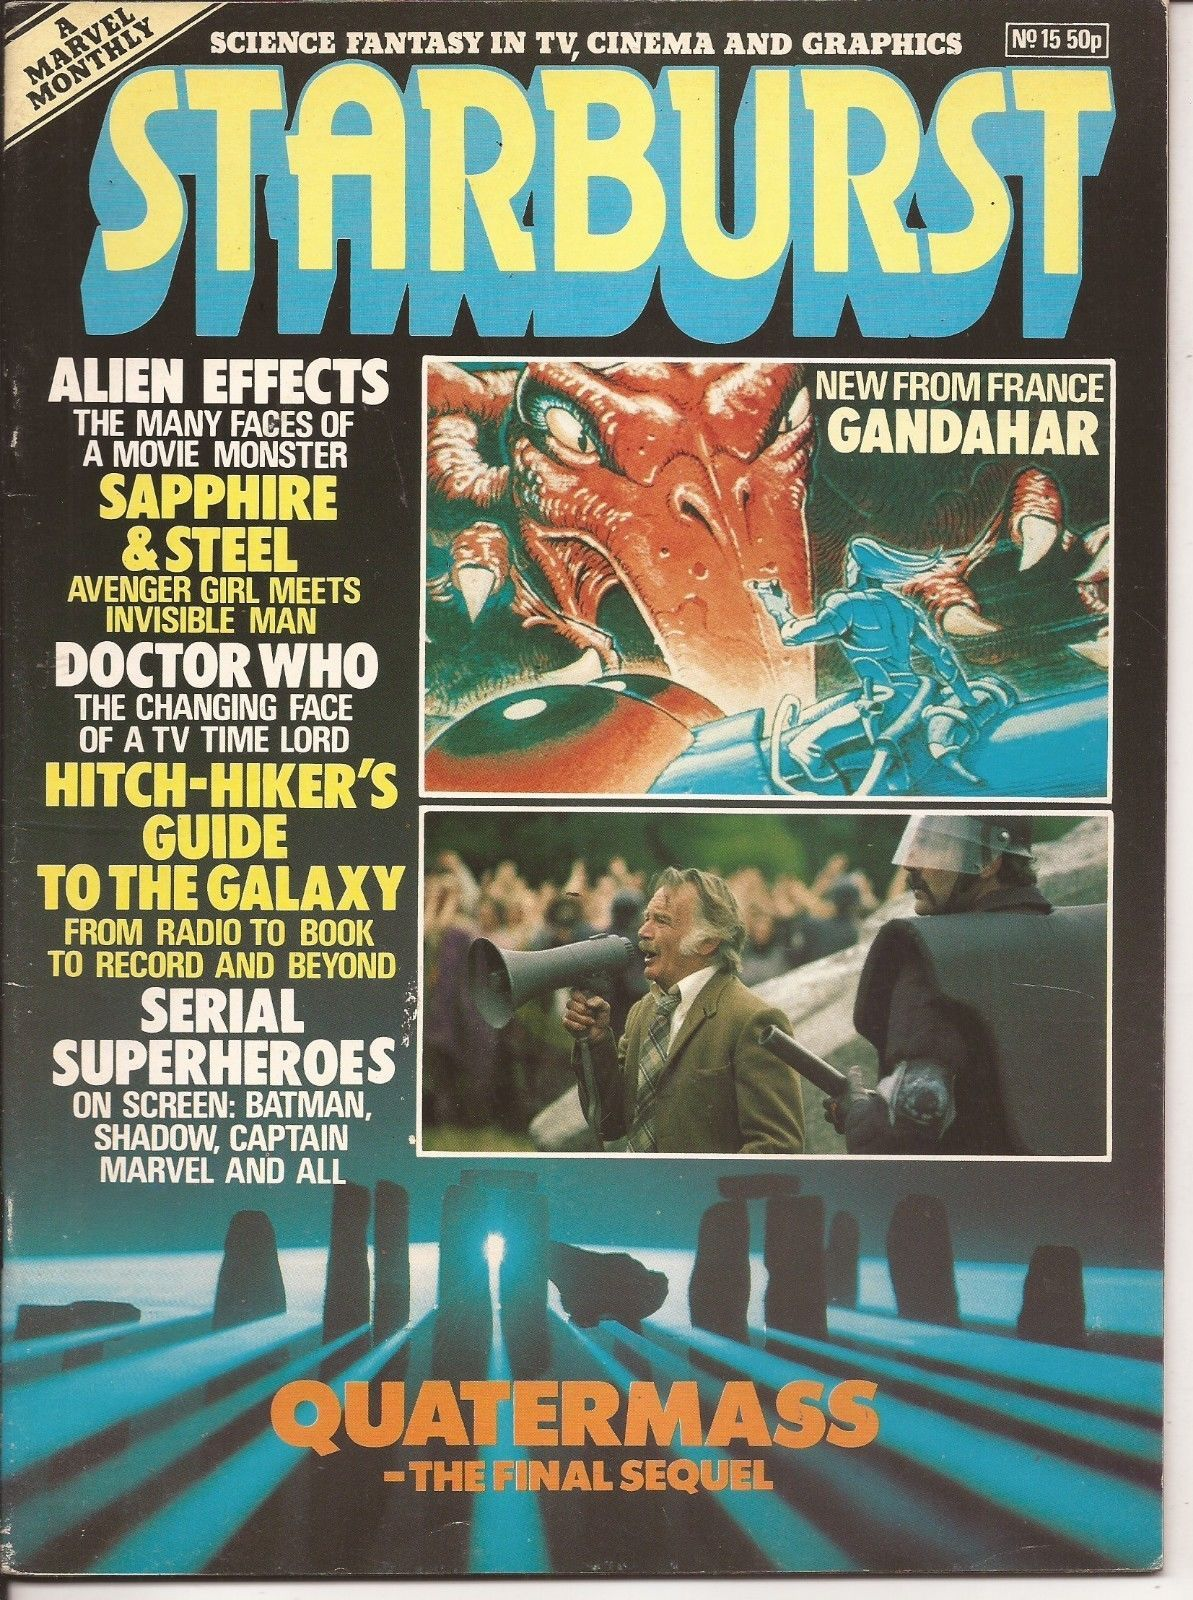 Marvel Starburst #15 Quatermass Doctor Who Gandahar Serial Superheroes Sci-Fi